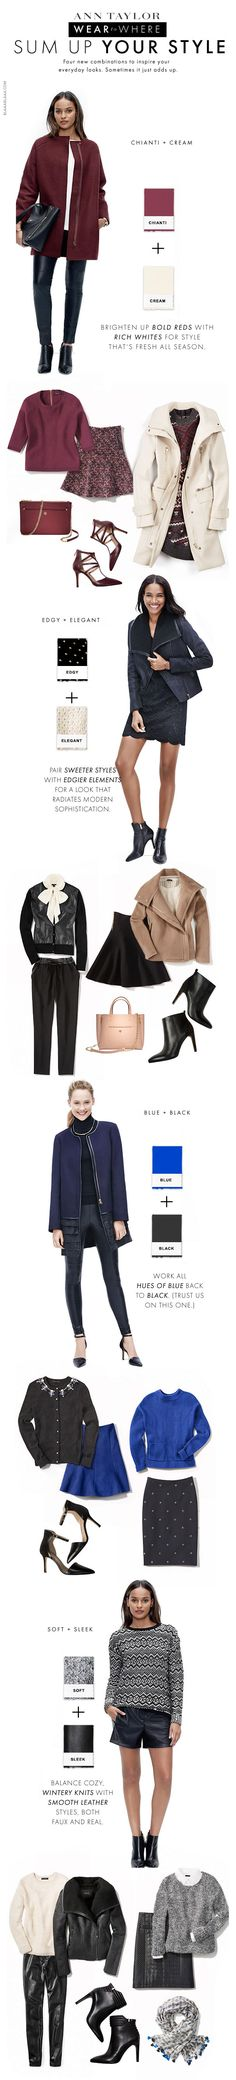 Ann Taylor – Sum Up Your Style